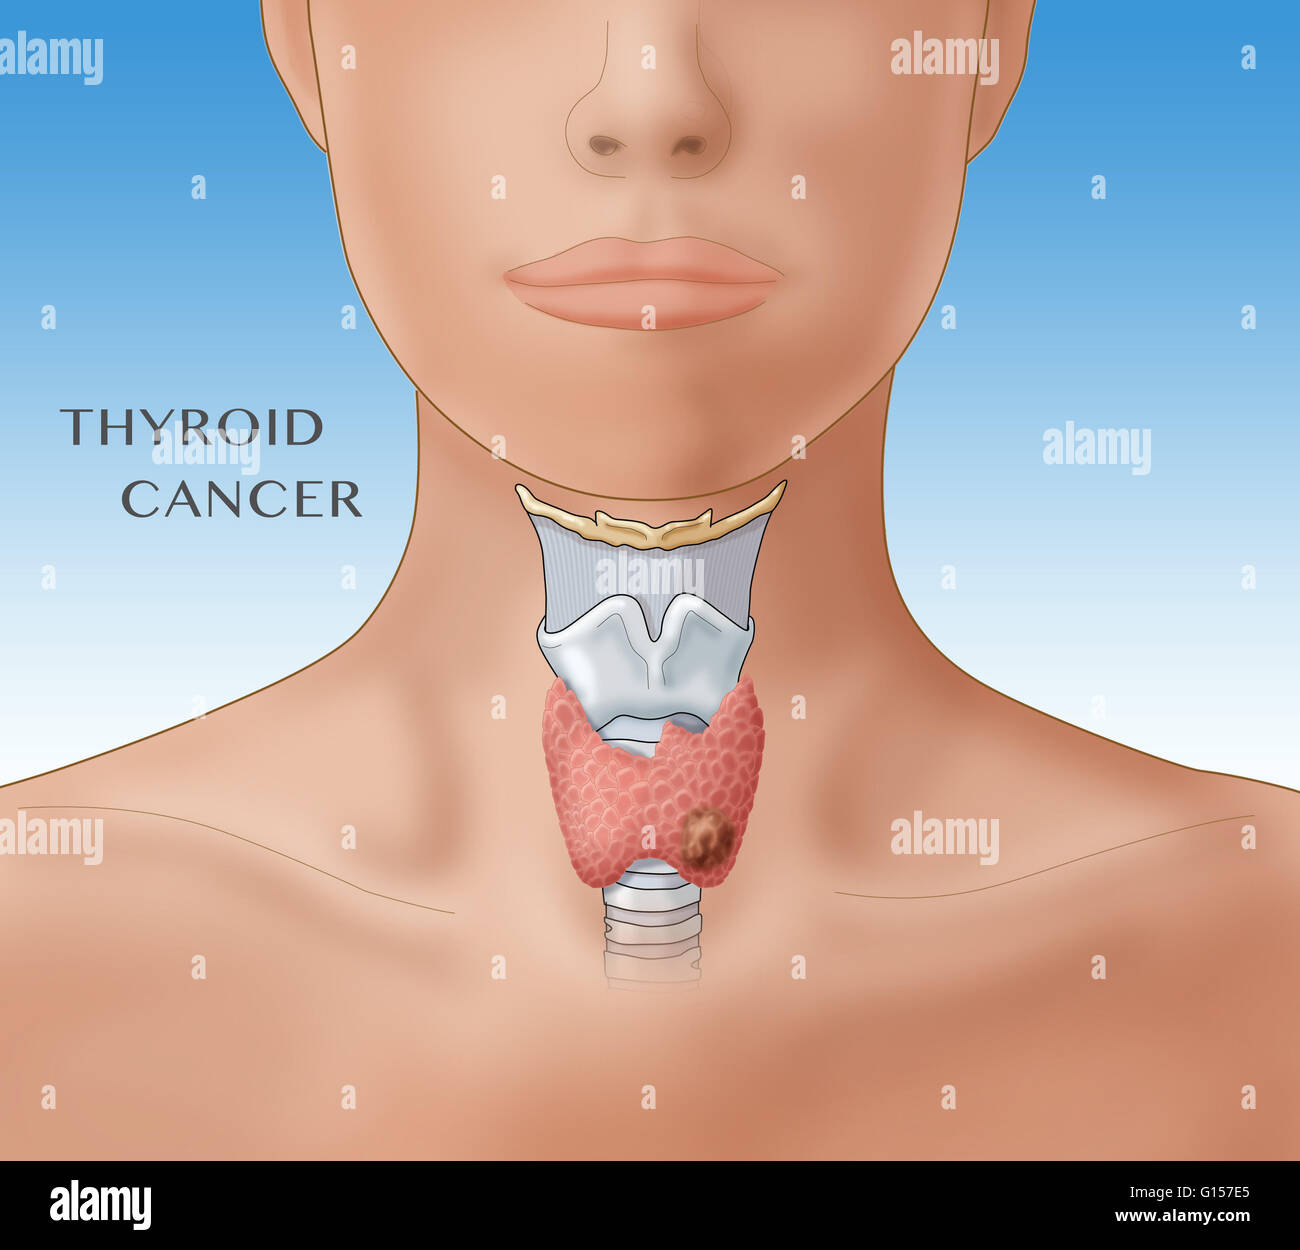 Thyroid Cancer Labeled Illustration Showing The Location Of The